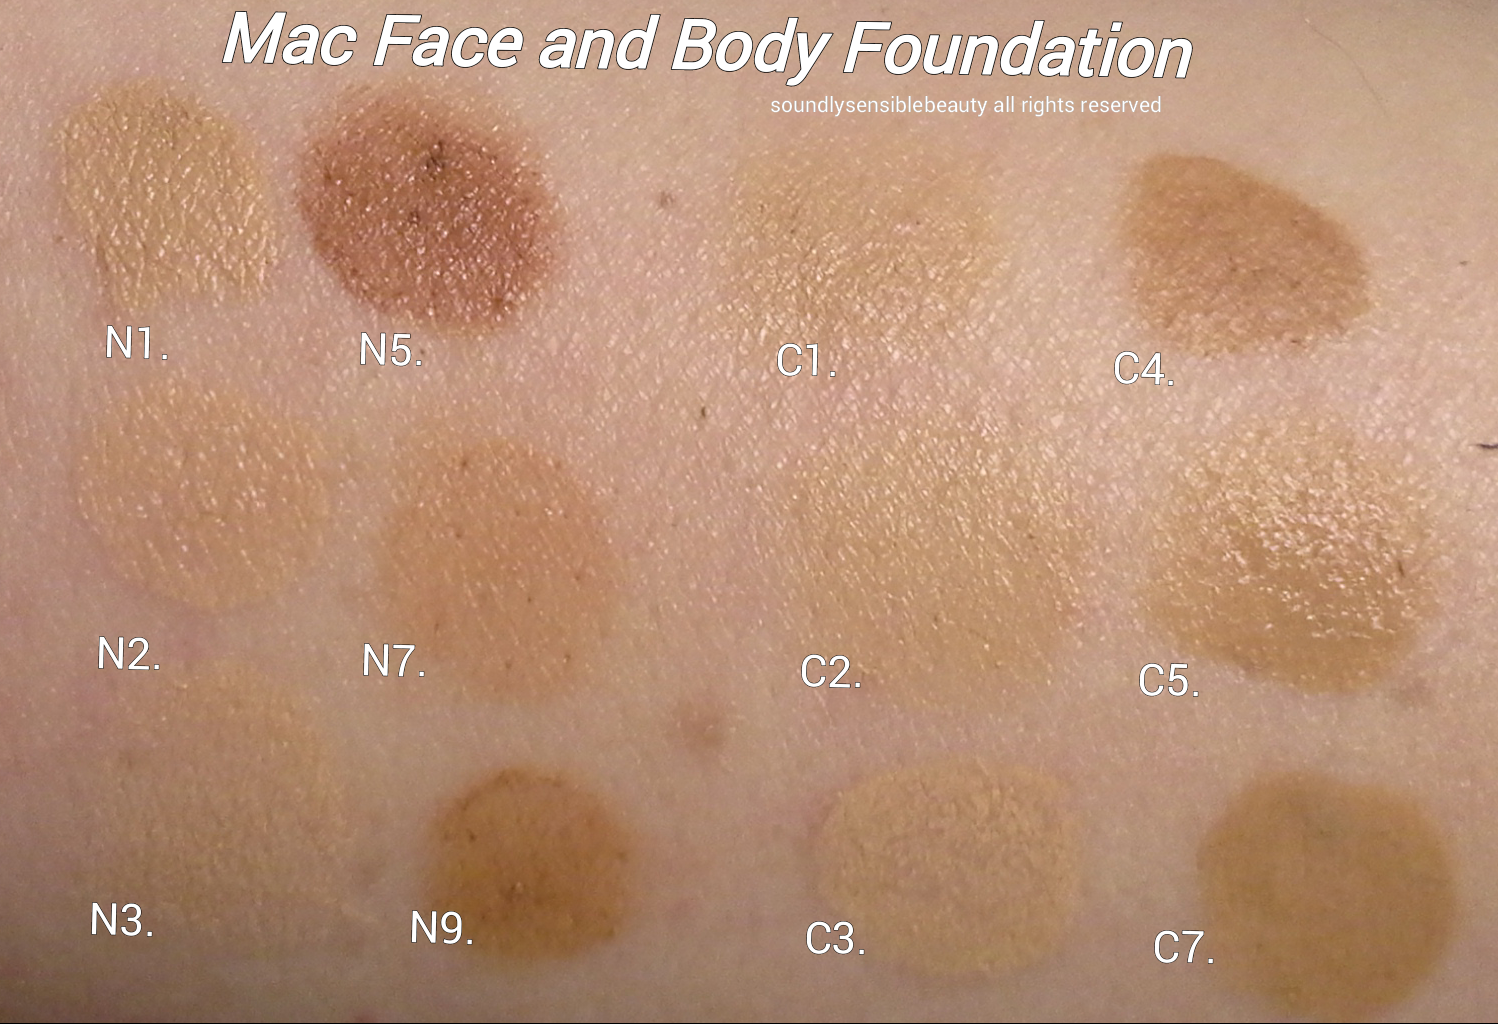 face and body foundation mac